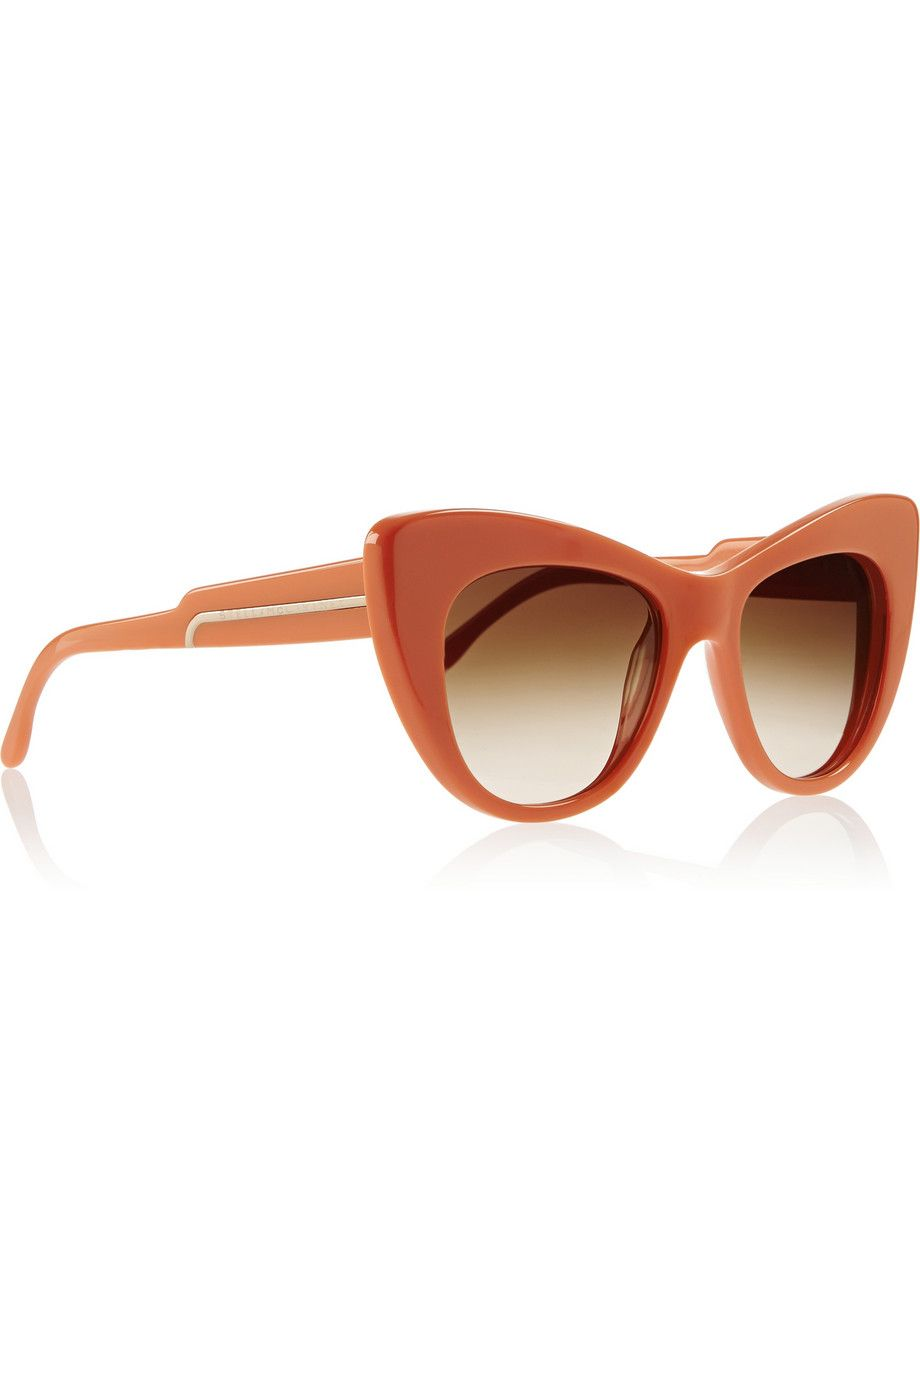 Le Meilleur Stella Mccartney Cat Eye Acetate Sunglasses Net A Ce Mois Ci